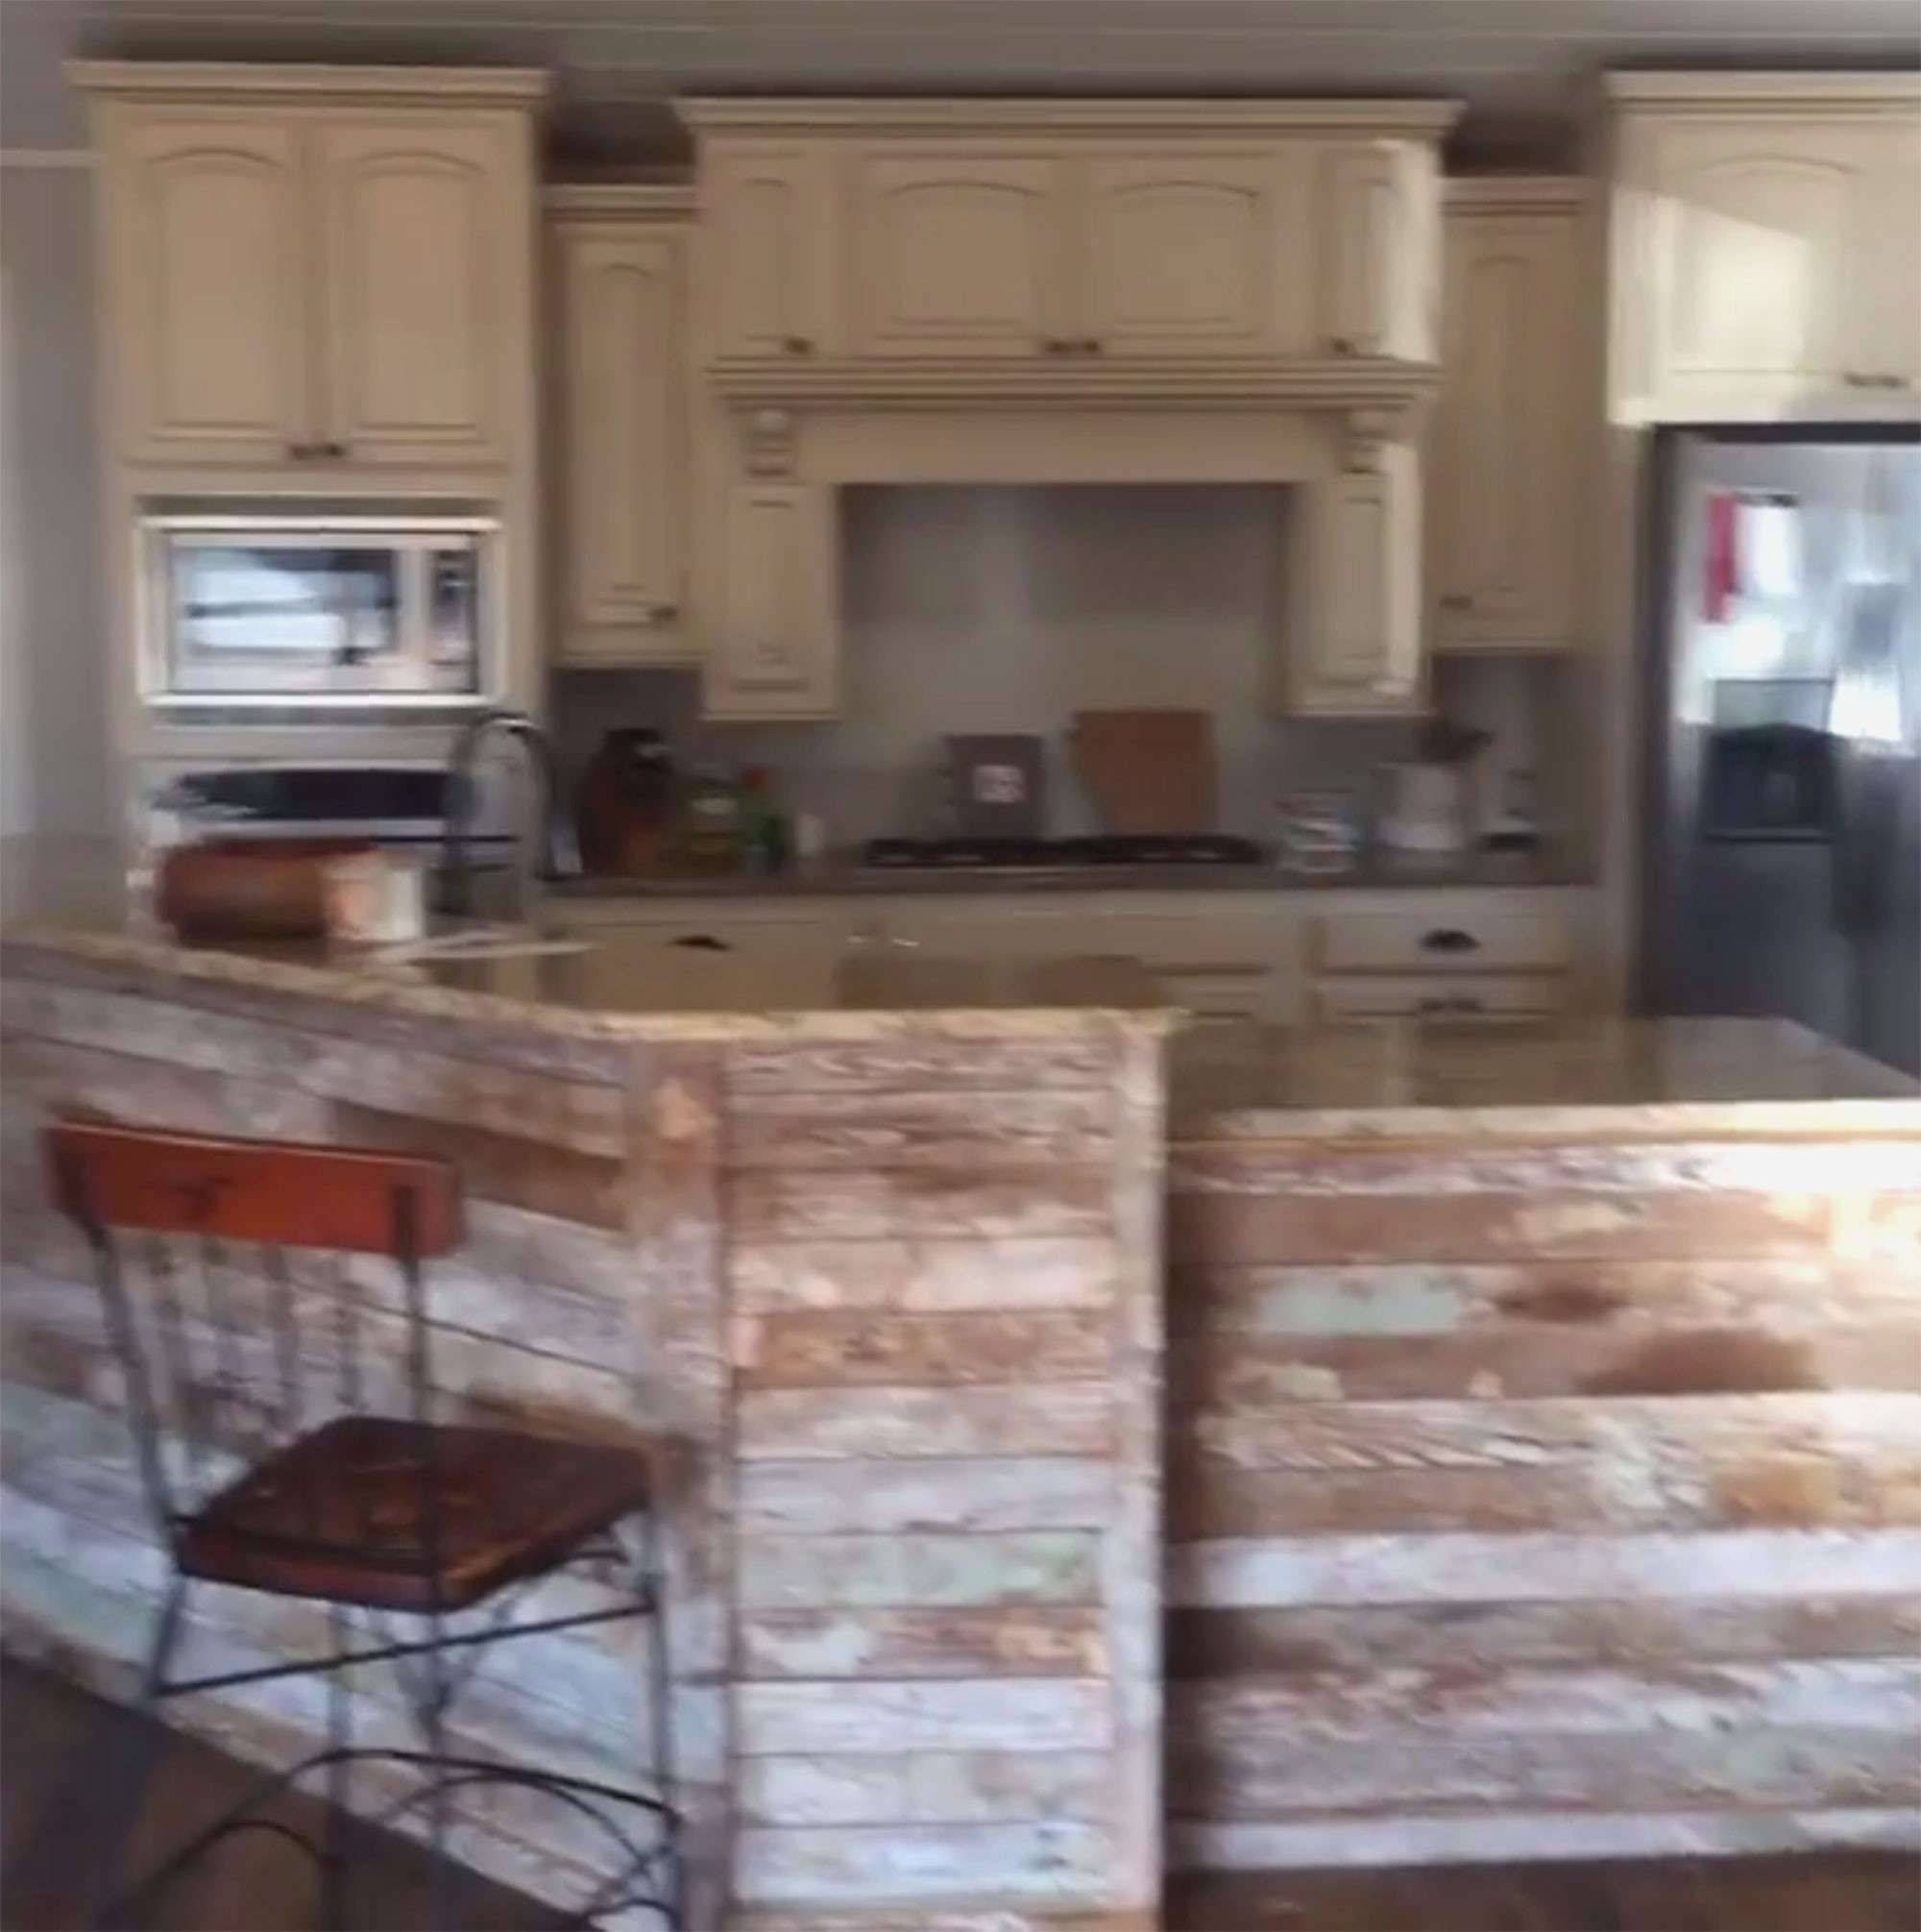 hardwood floors in kitchen images of delightful flooring for kitchens within discount flooring kitchen inside delightful flooring for kitchens within discount flooring kitchen kitchens unlim